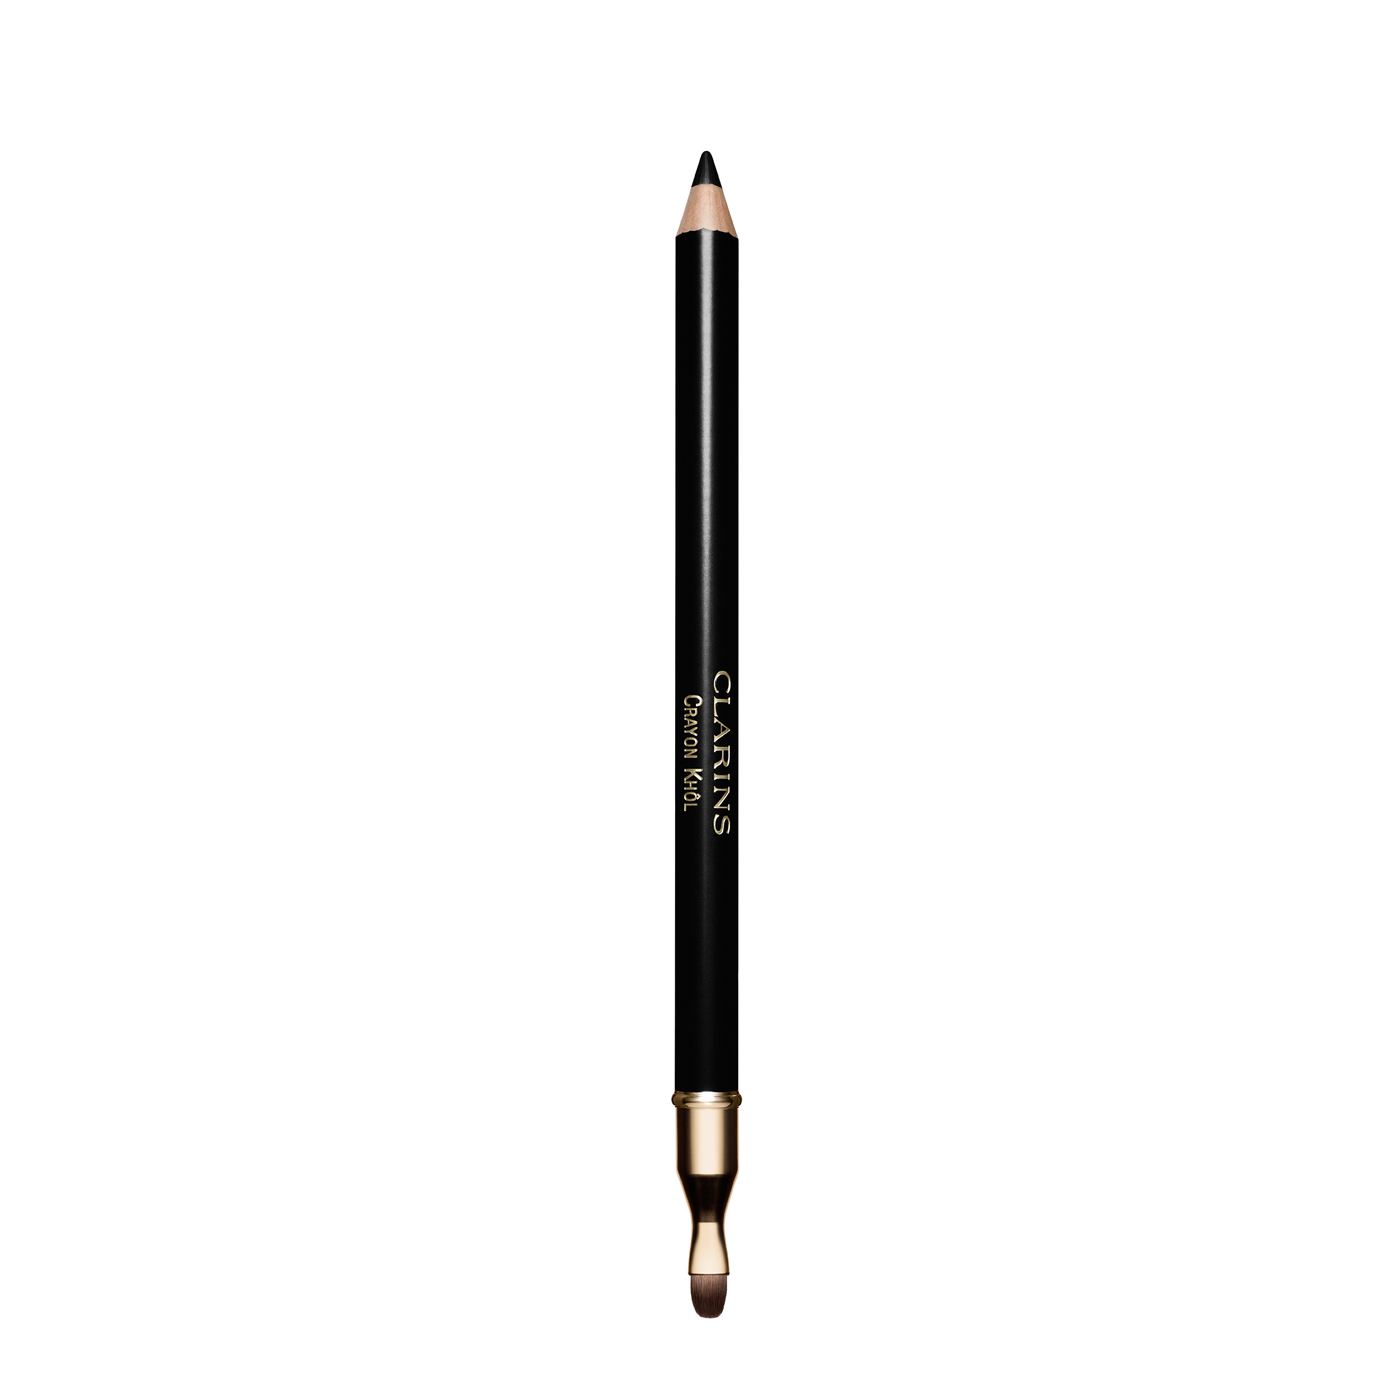 Crayon Kh´l Eye Pencil Eyeliners Clarins